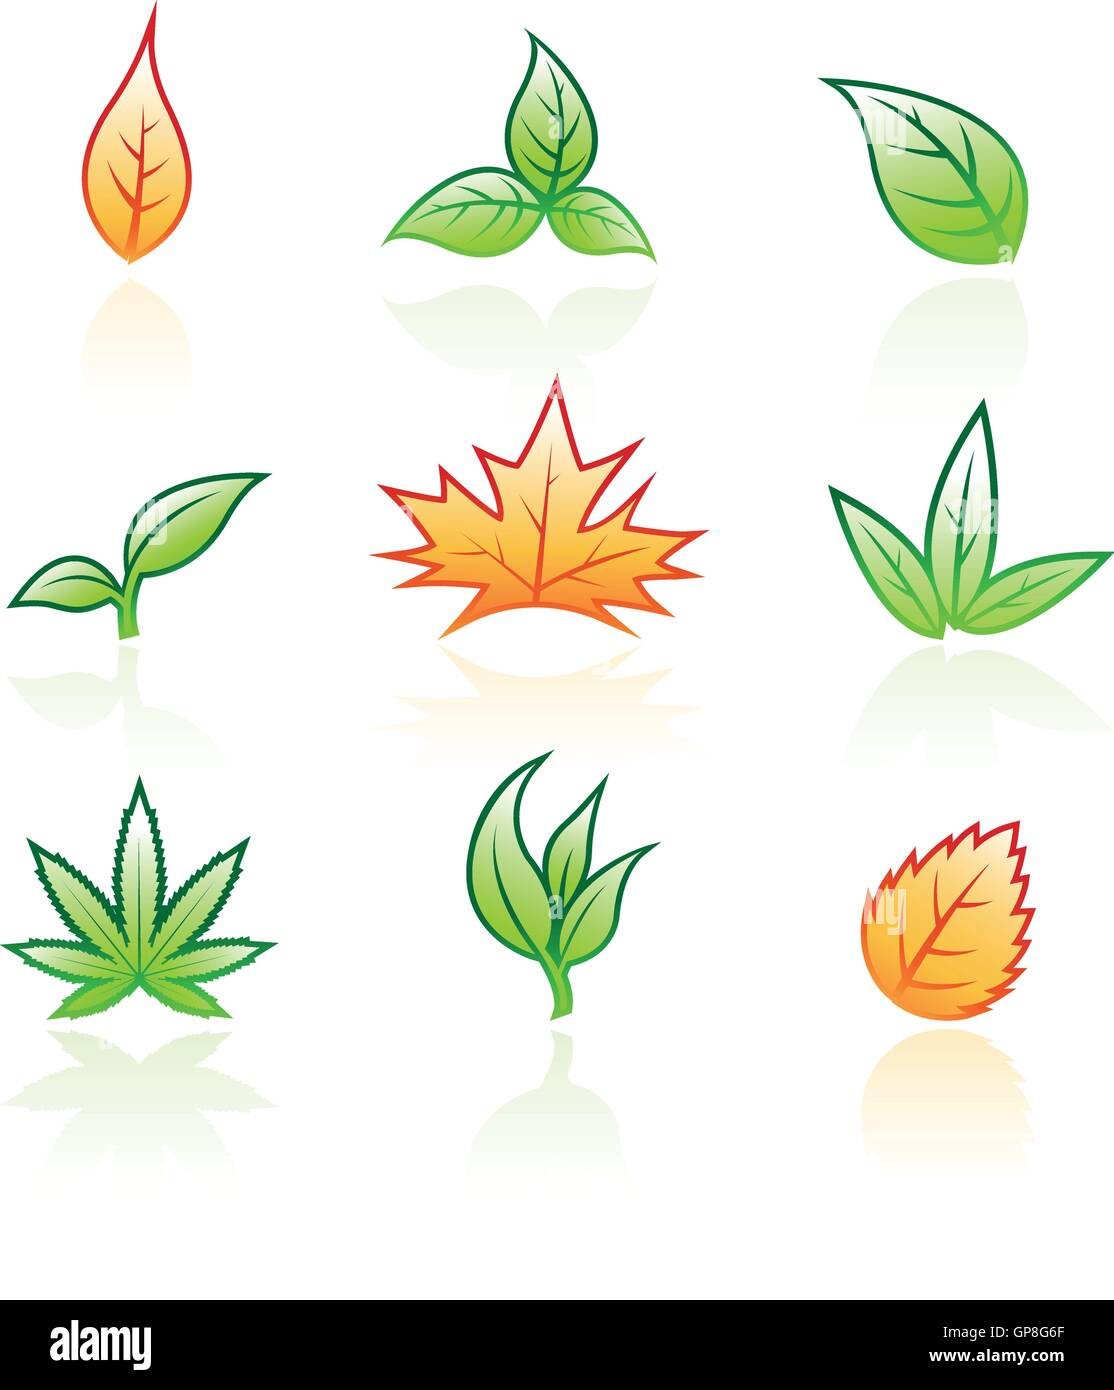 illustration of glossy leaves isolated on a white background - Stock Vector